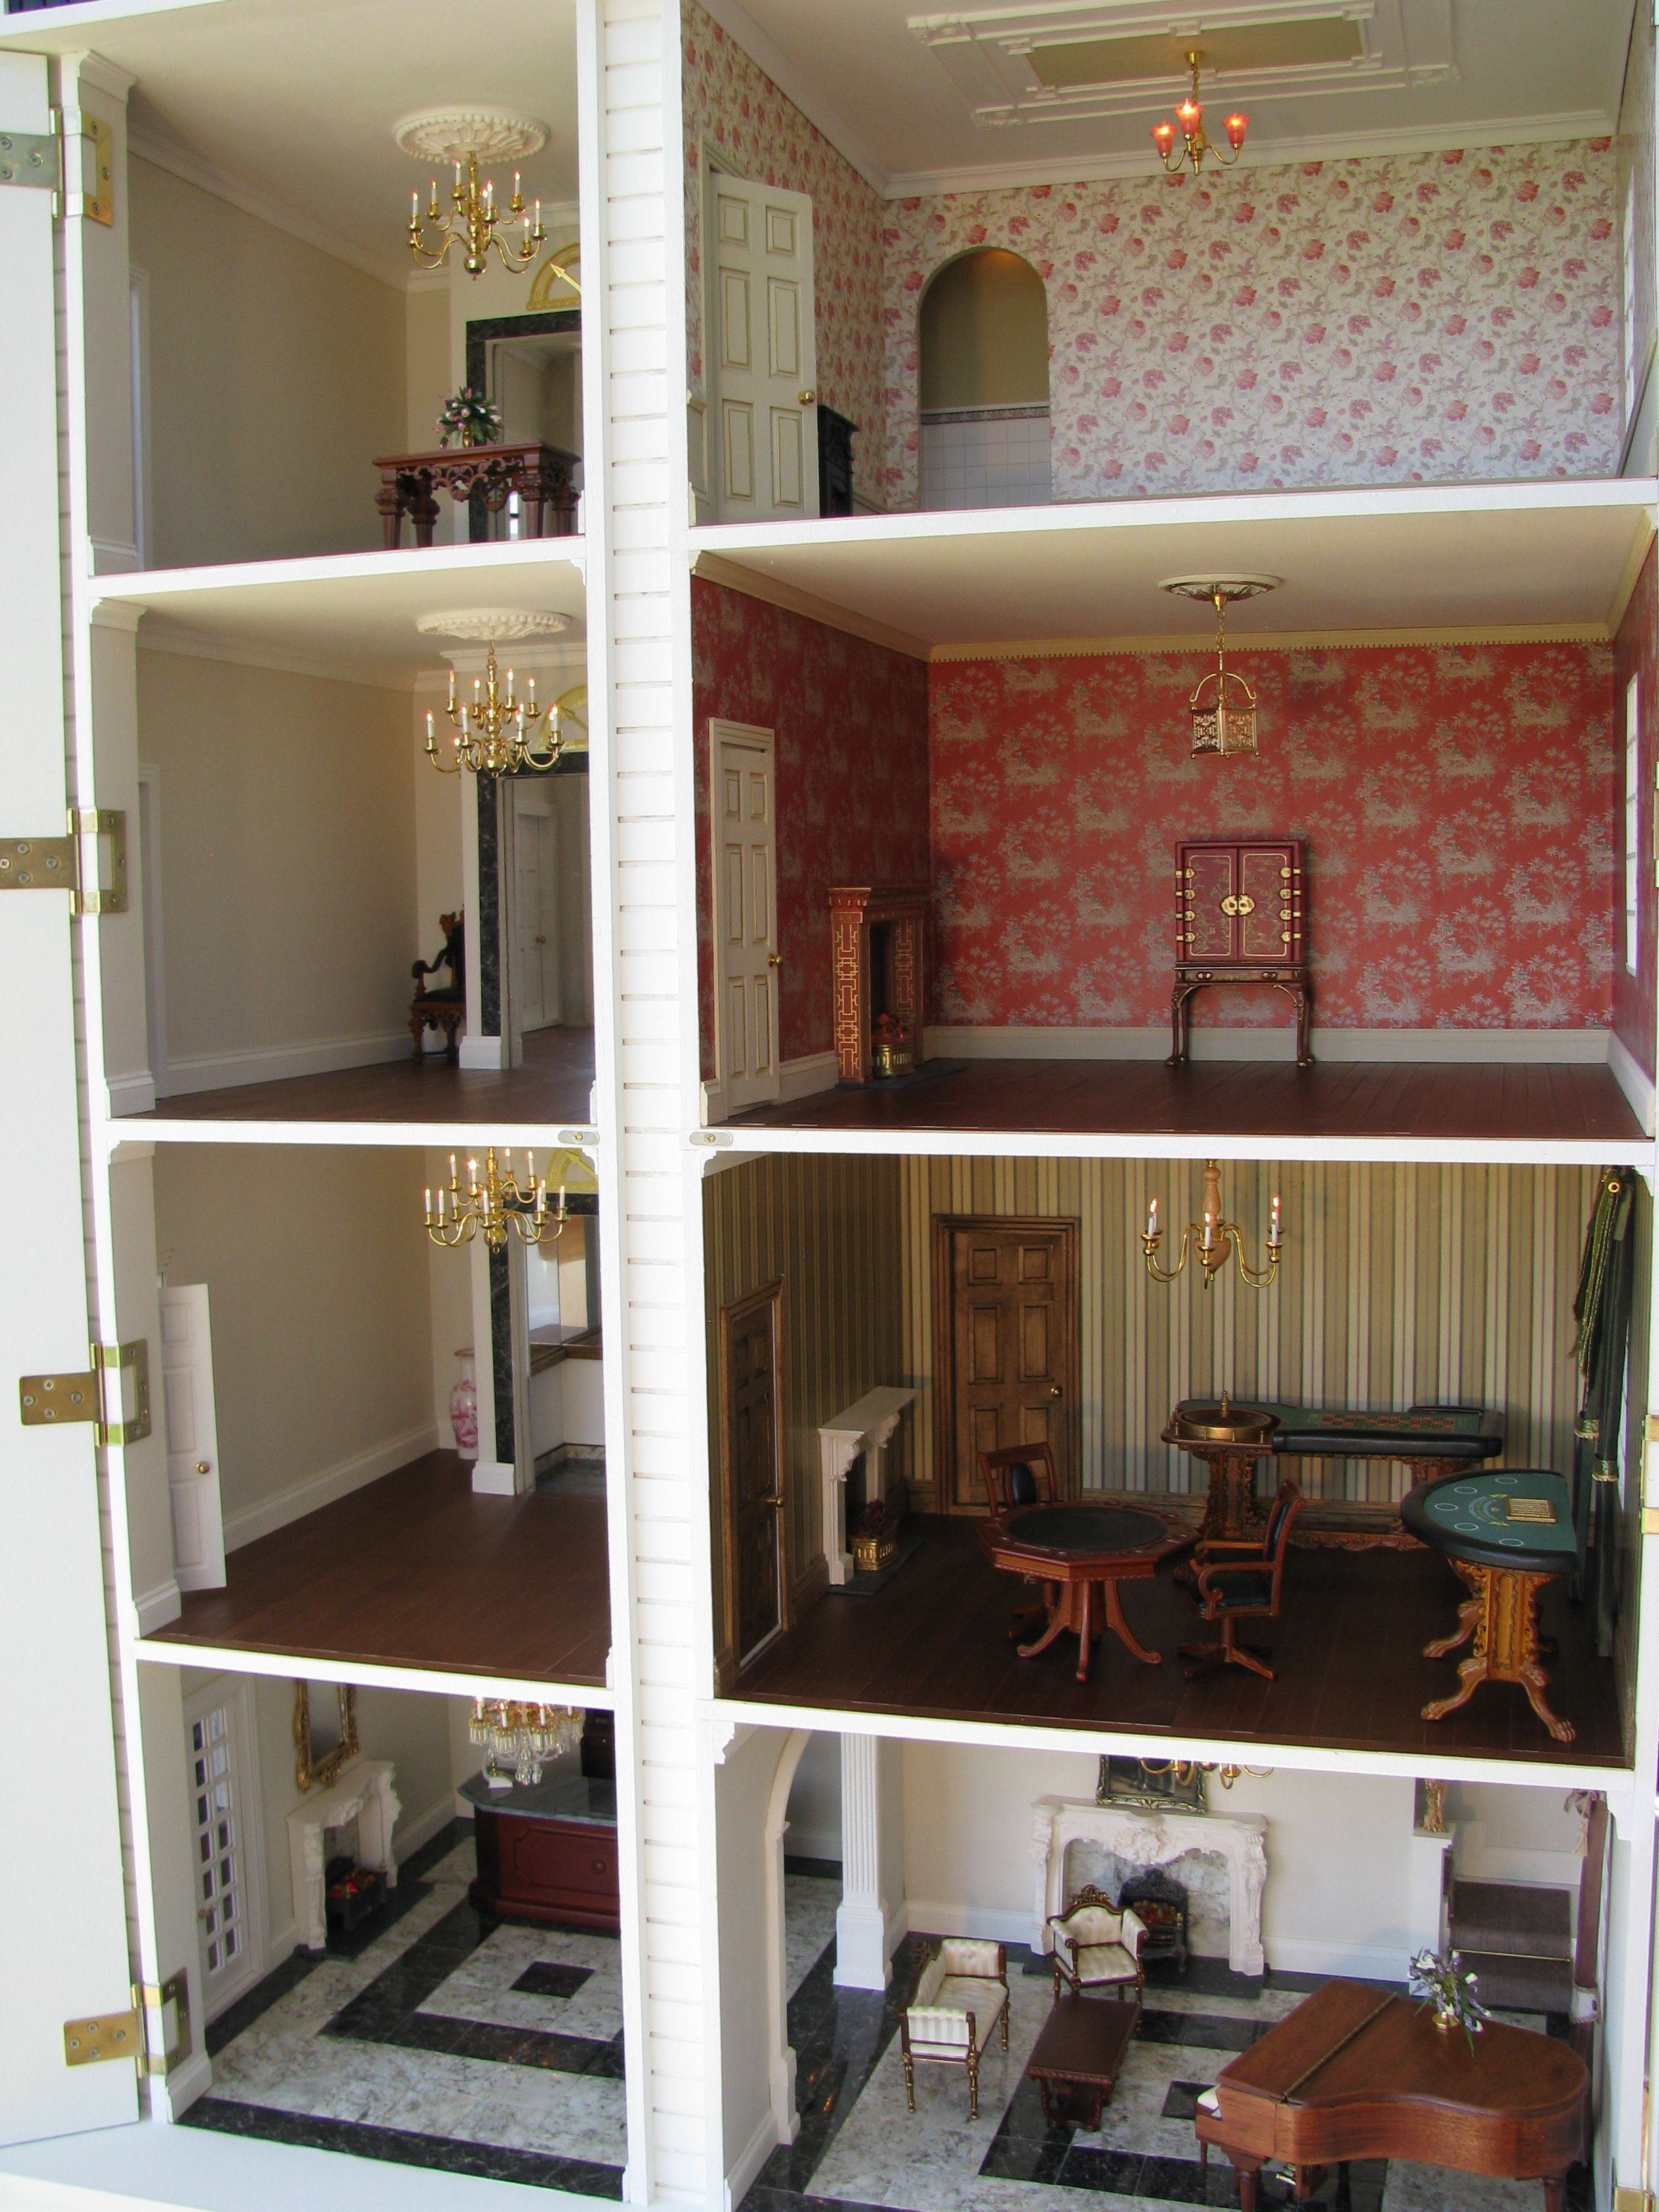 Dolls House Hotel, Cross Section, Can You See The Lift